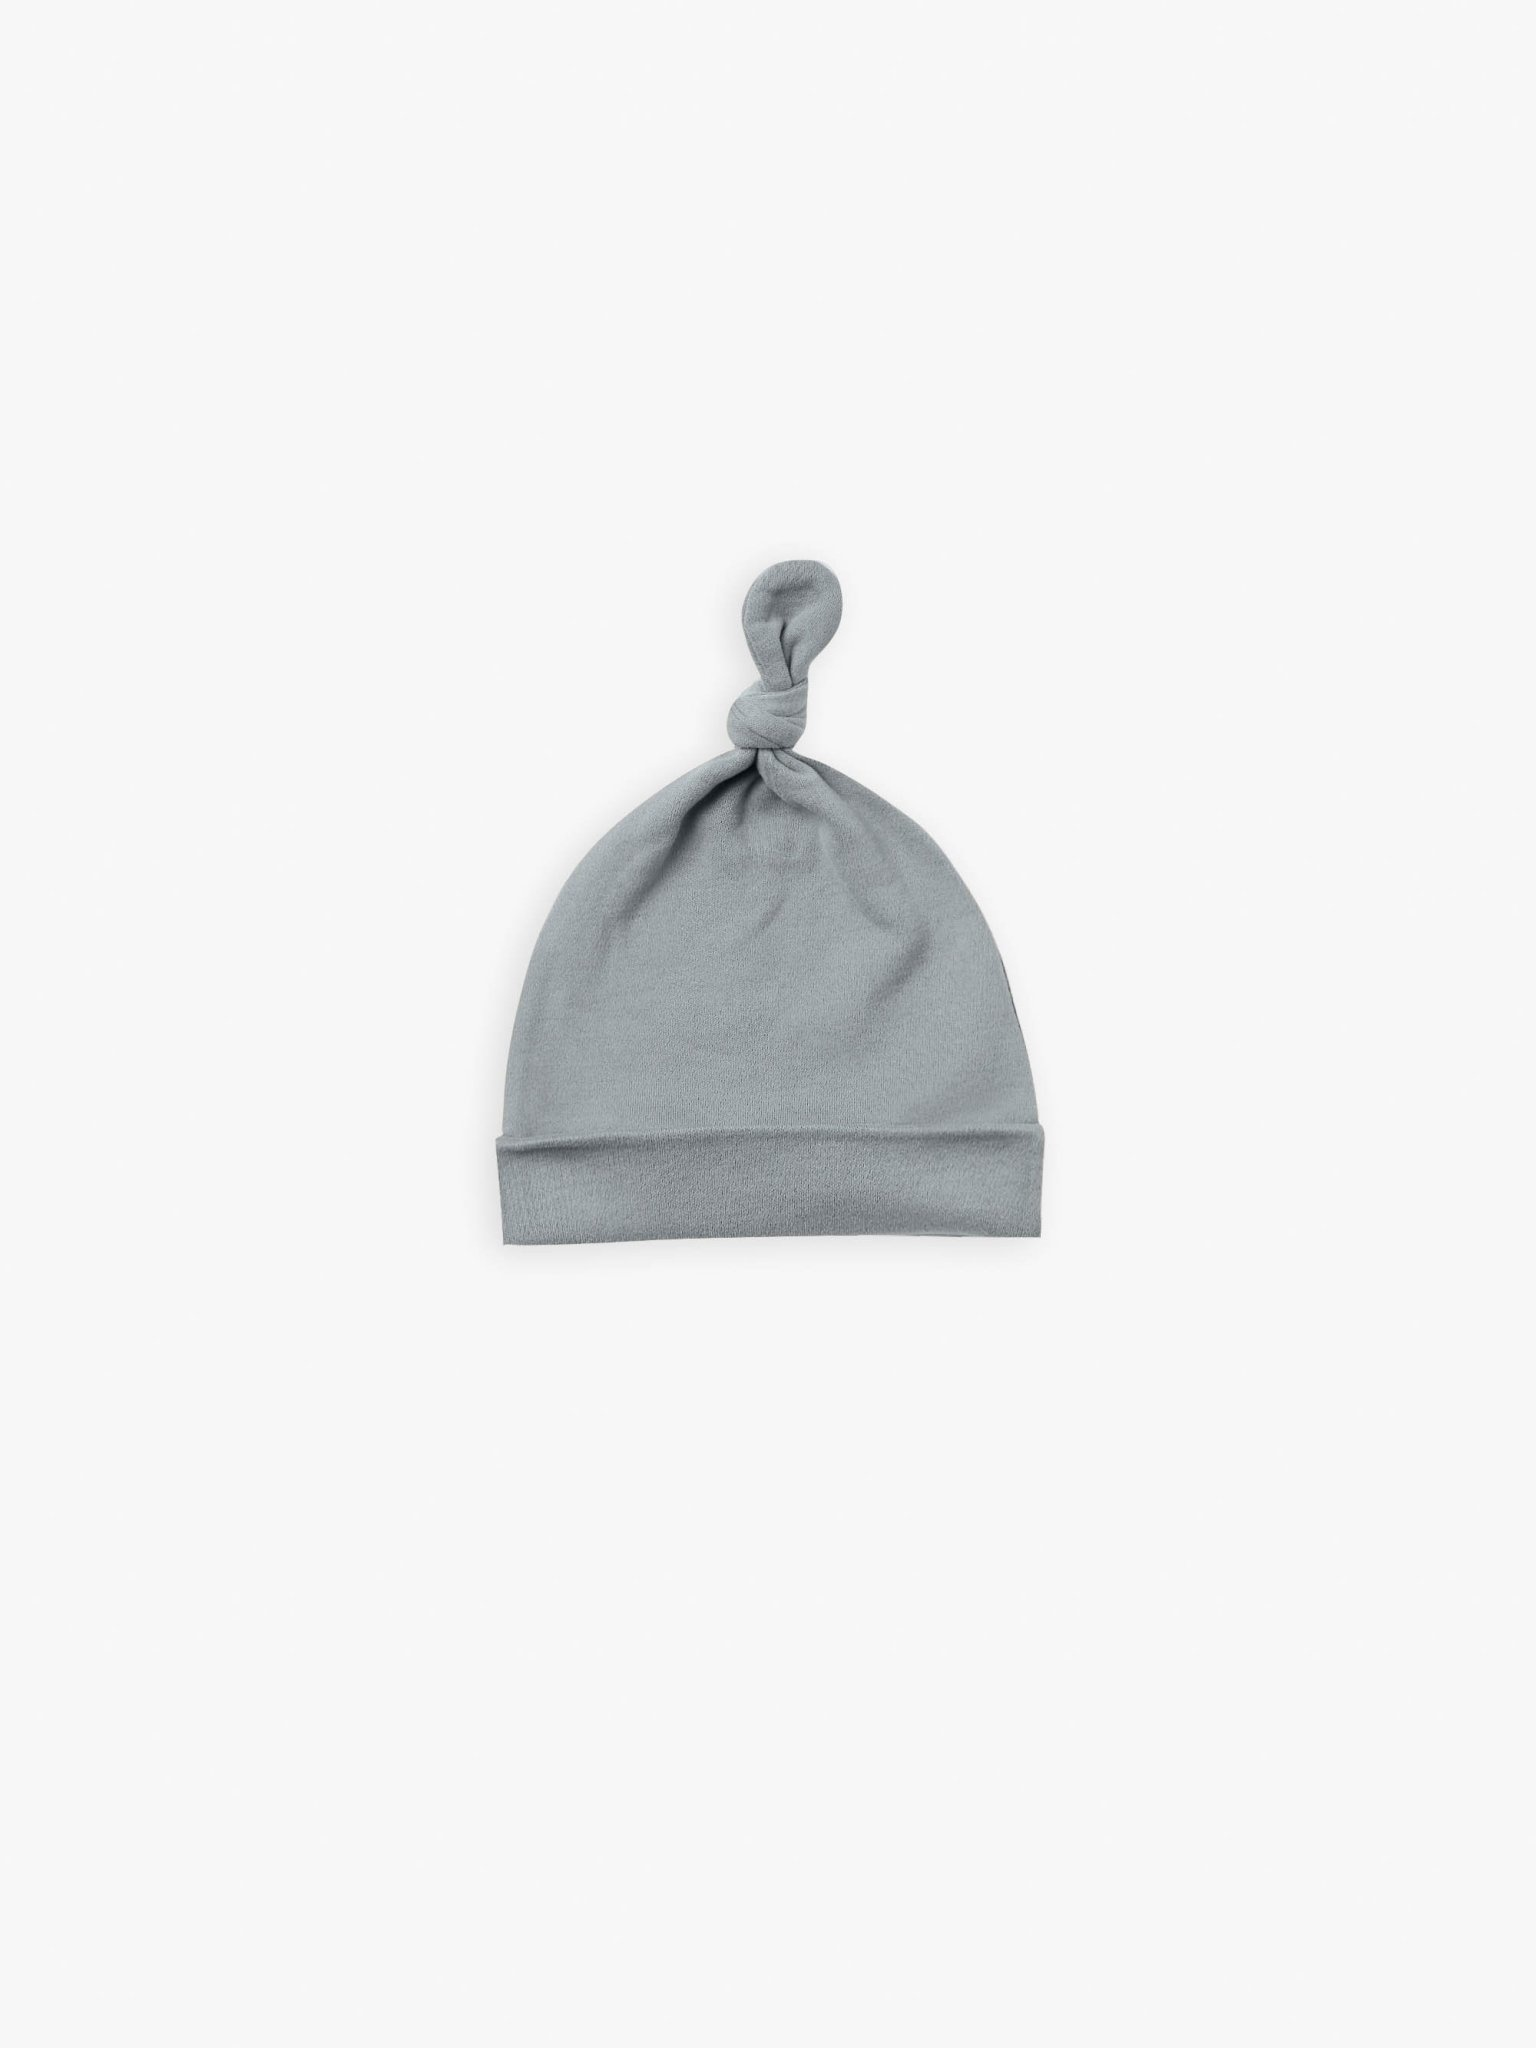 Quincy Mae Quincy Mae | Knotted Hat Ocean | 0-6 Mos